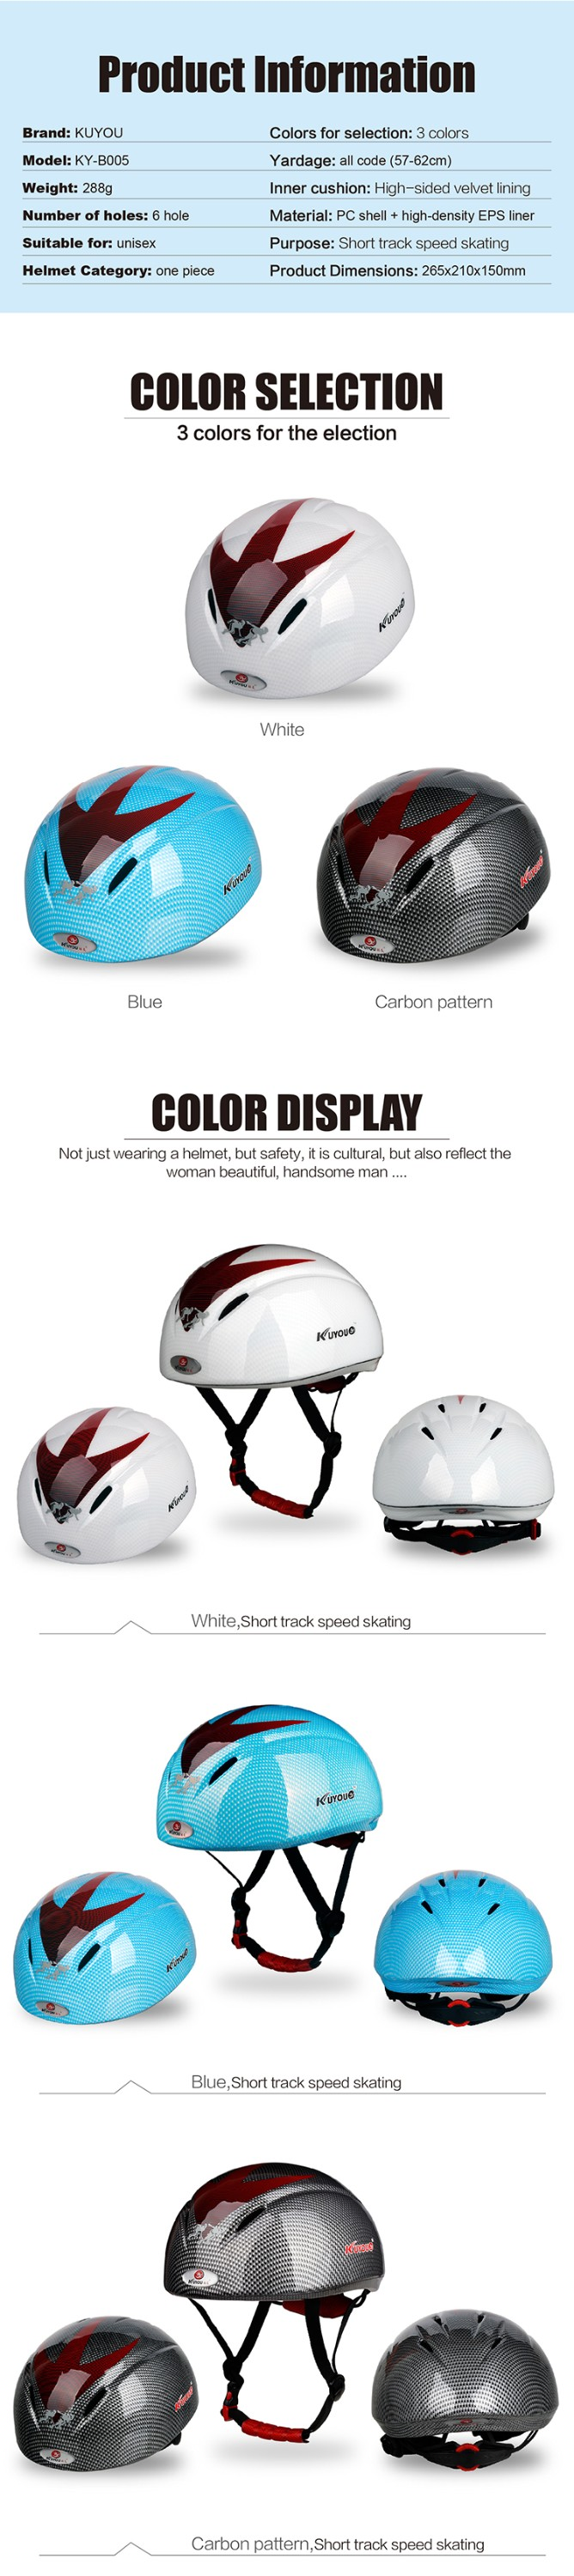 Professional skateboard Skiing short tracking speed skating safty Helmet